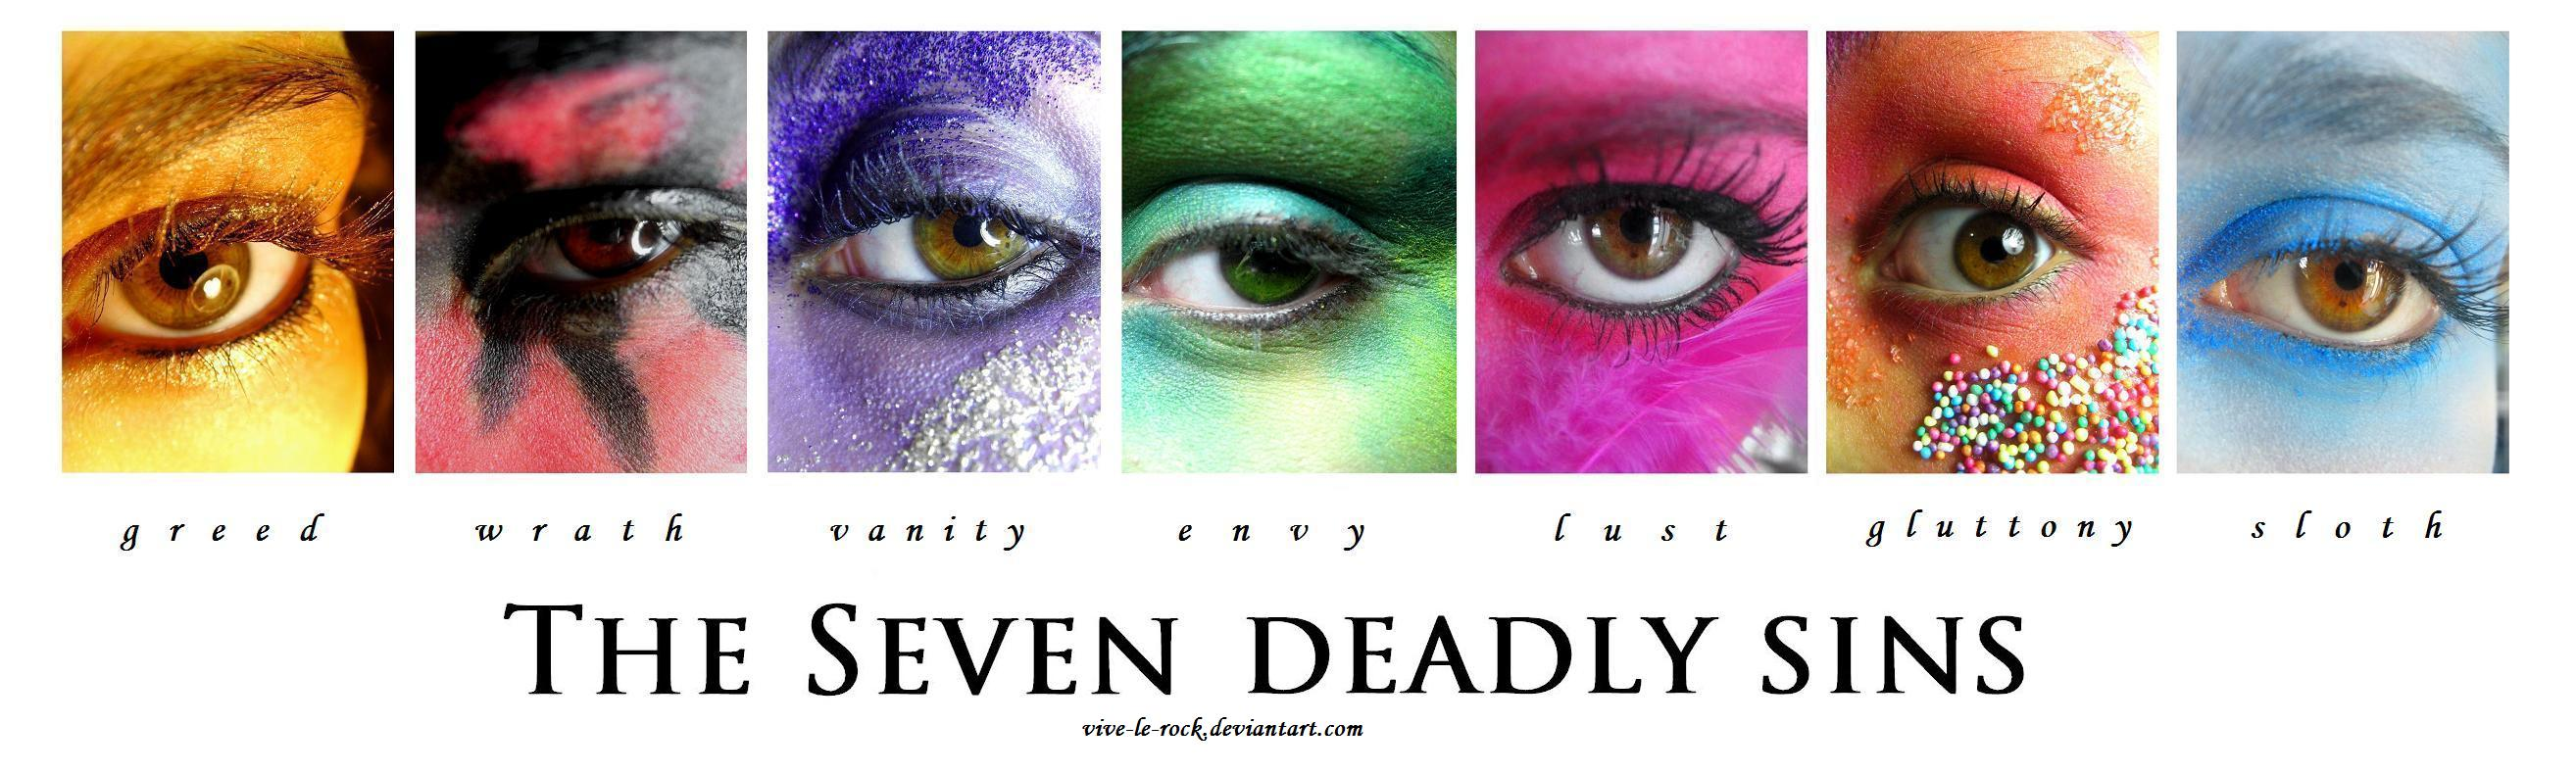 image the seven deadly - photo #3